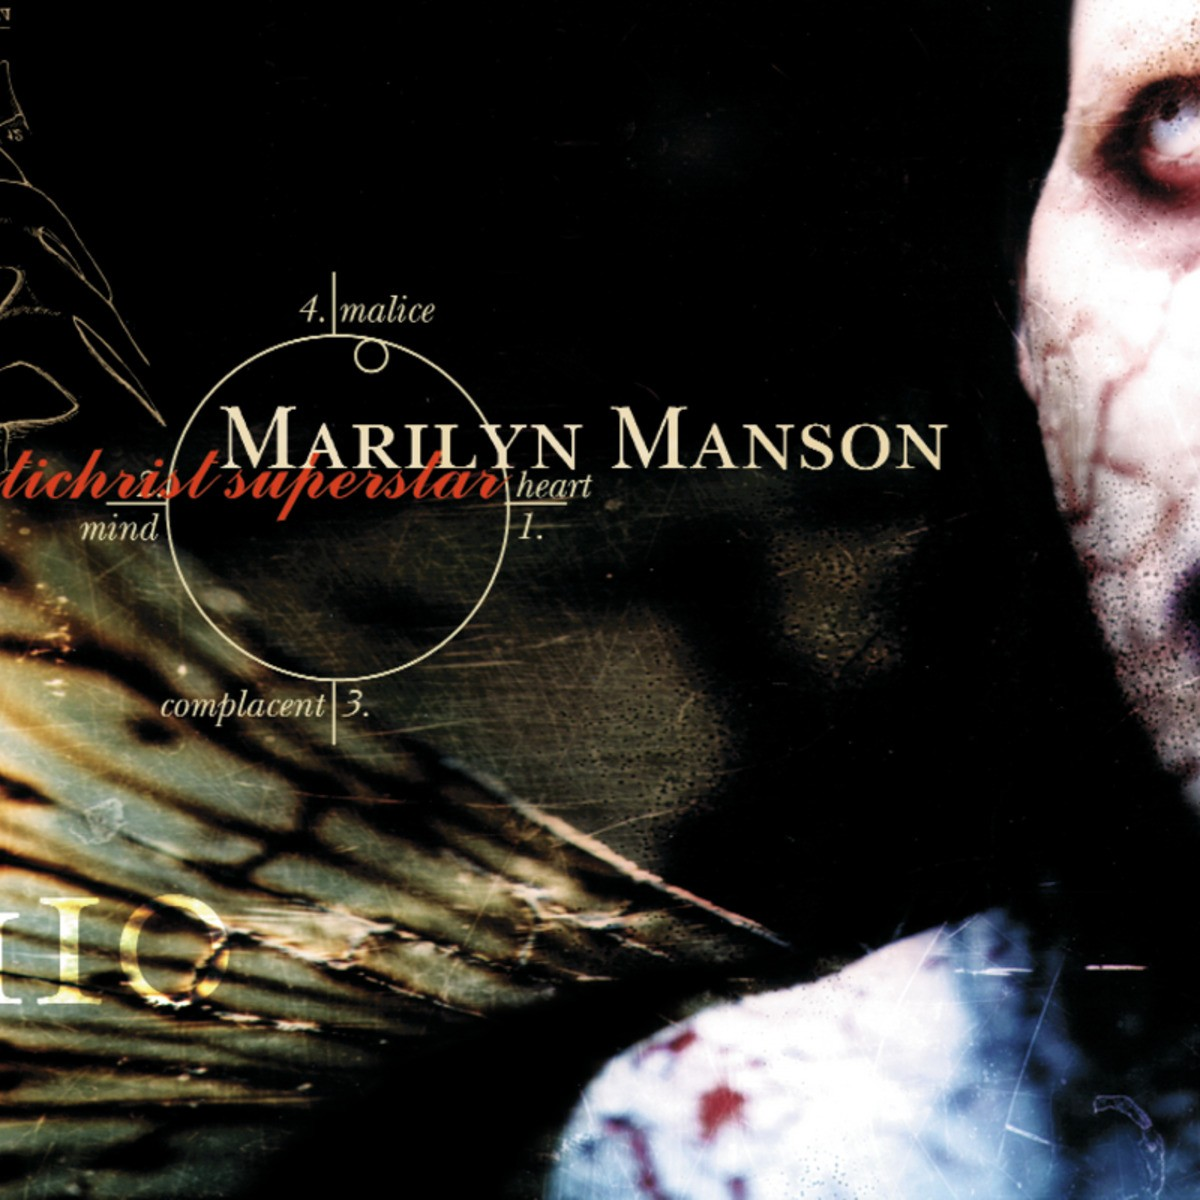 Marilyn Manson - Antichrist Superstar